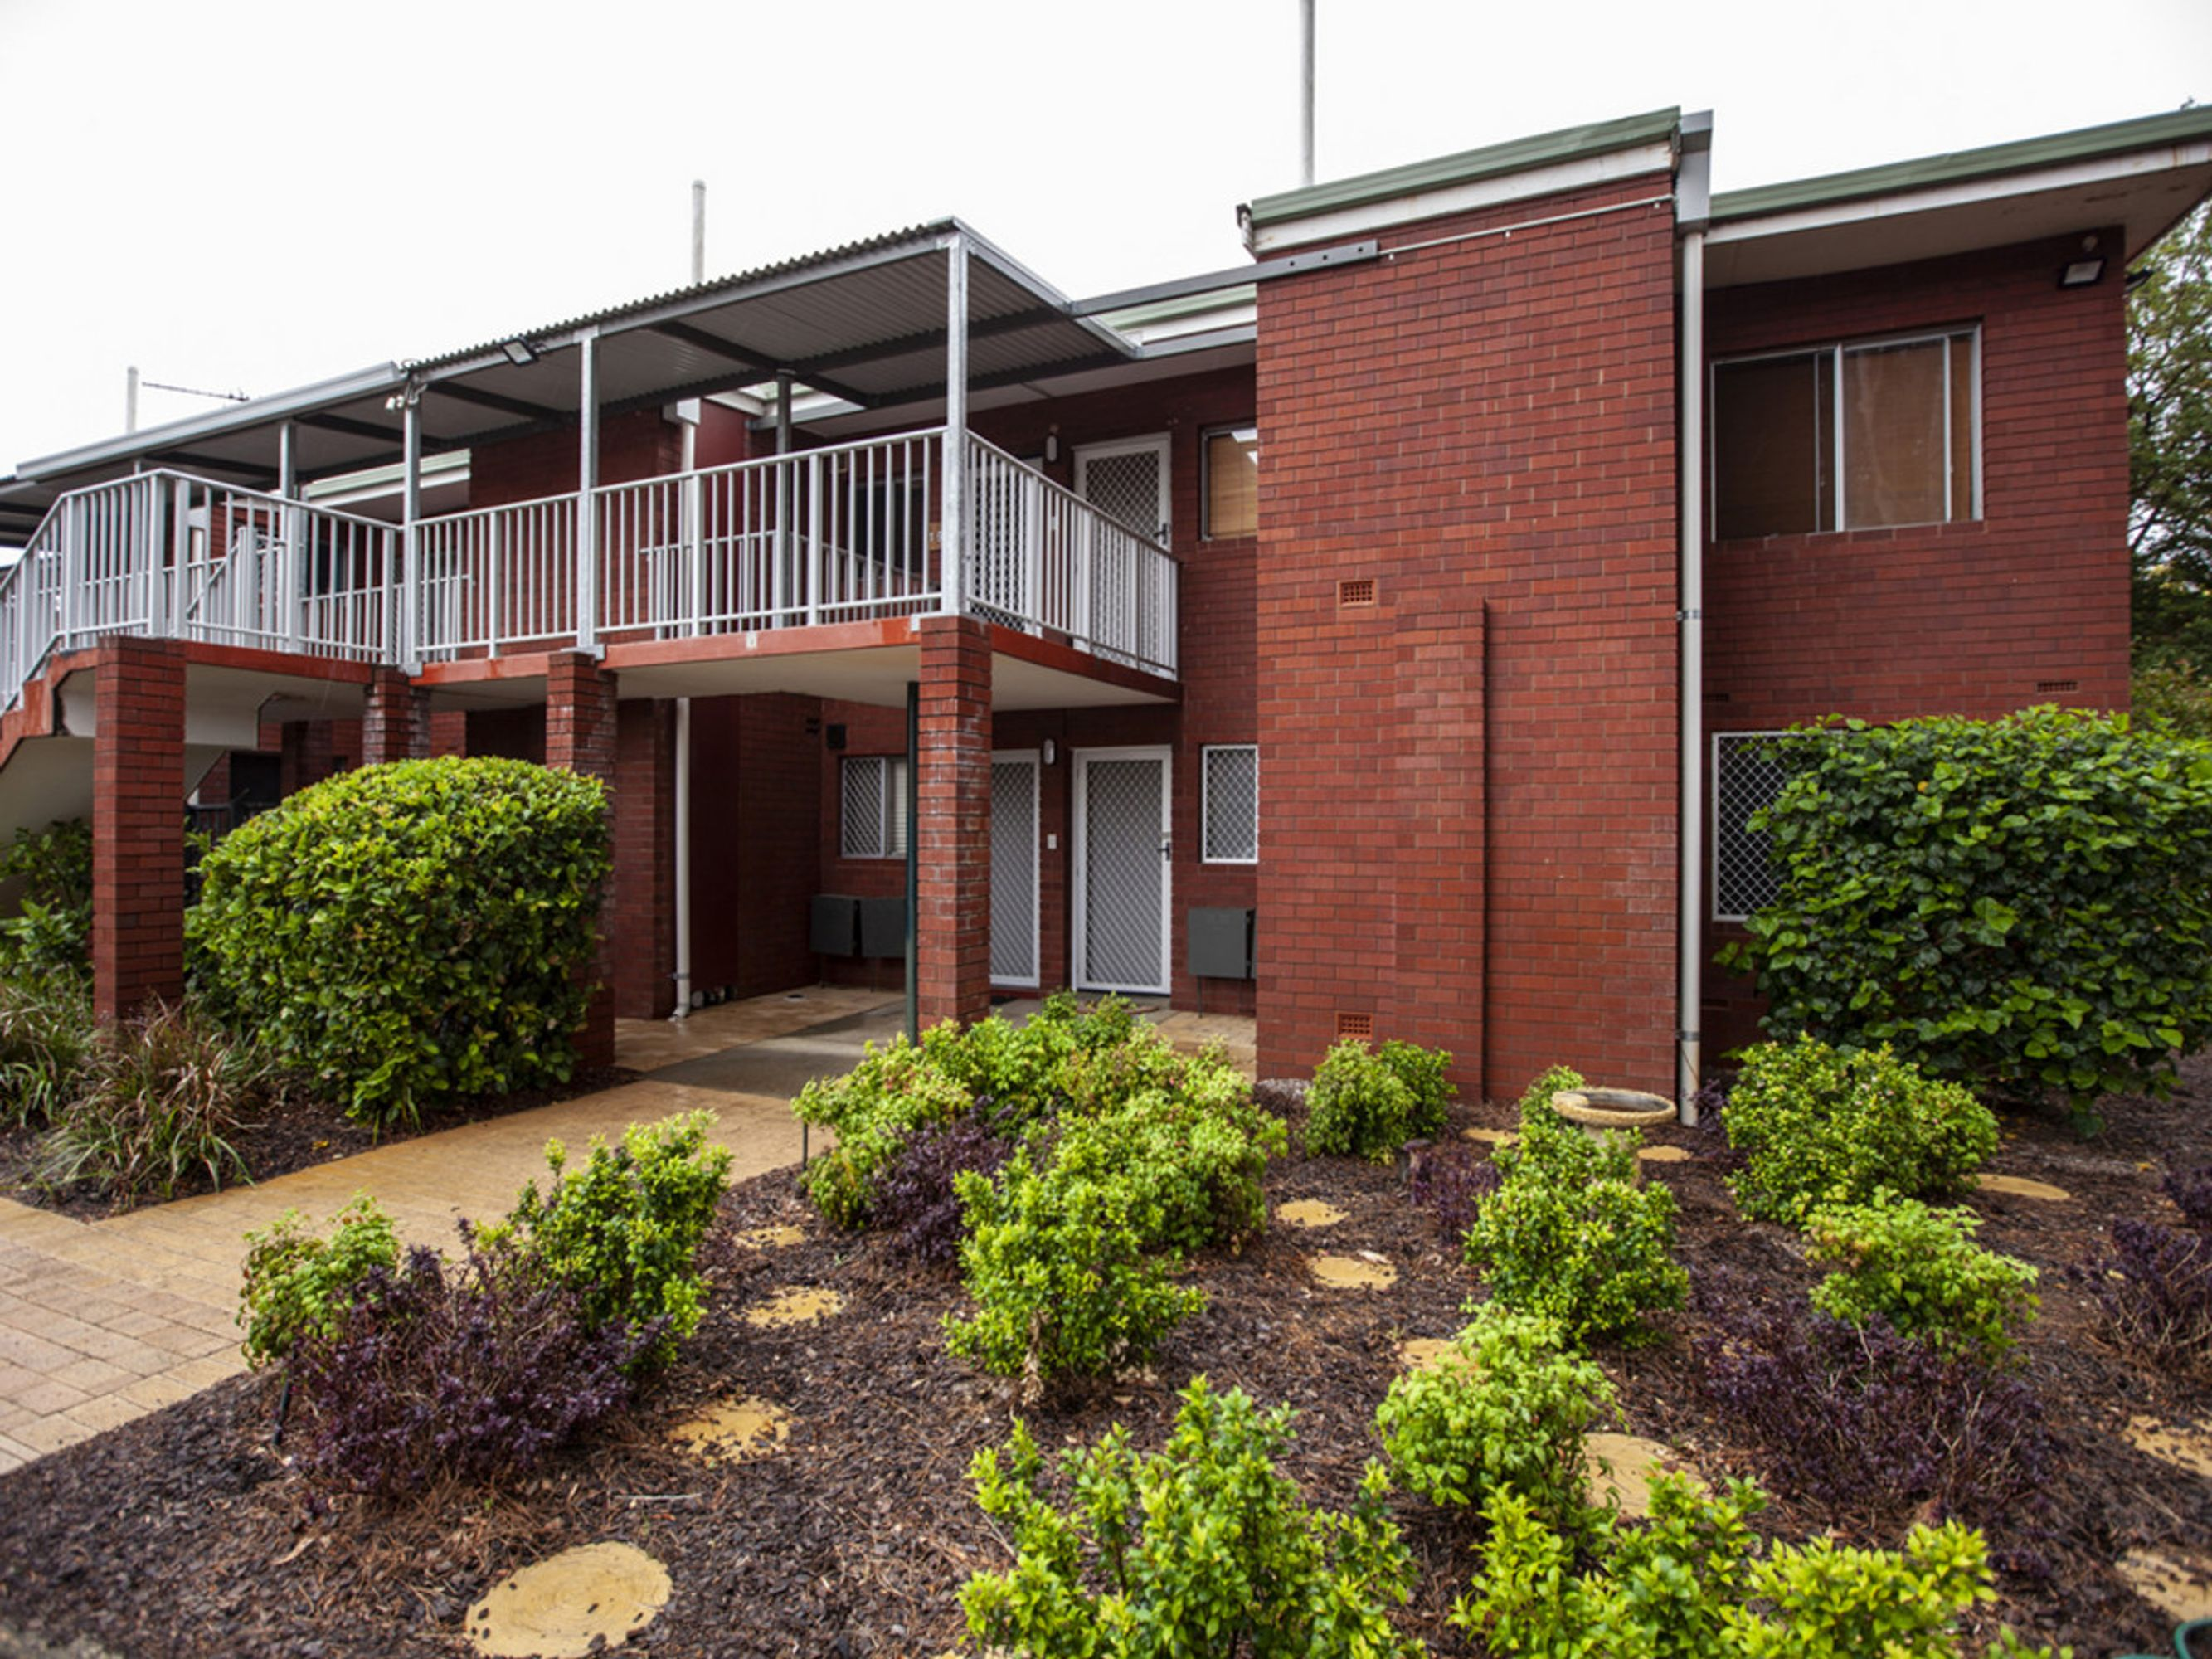 17/65 Shakespeare Avenue, Yokine, WA 6060